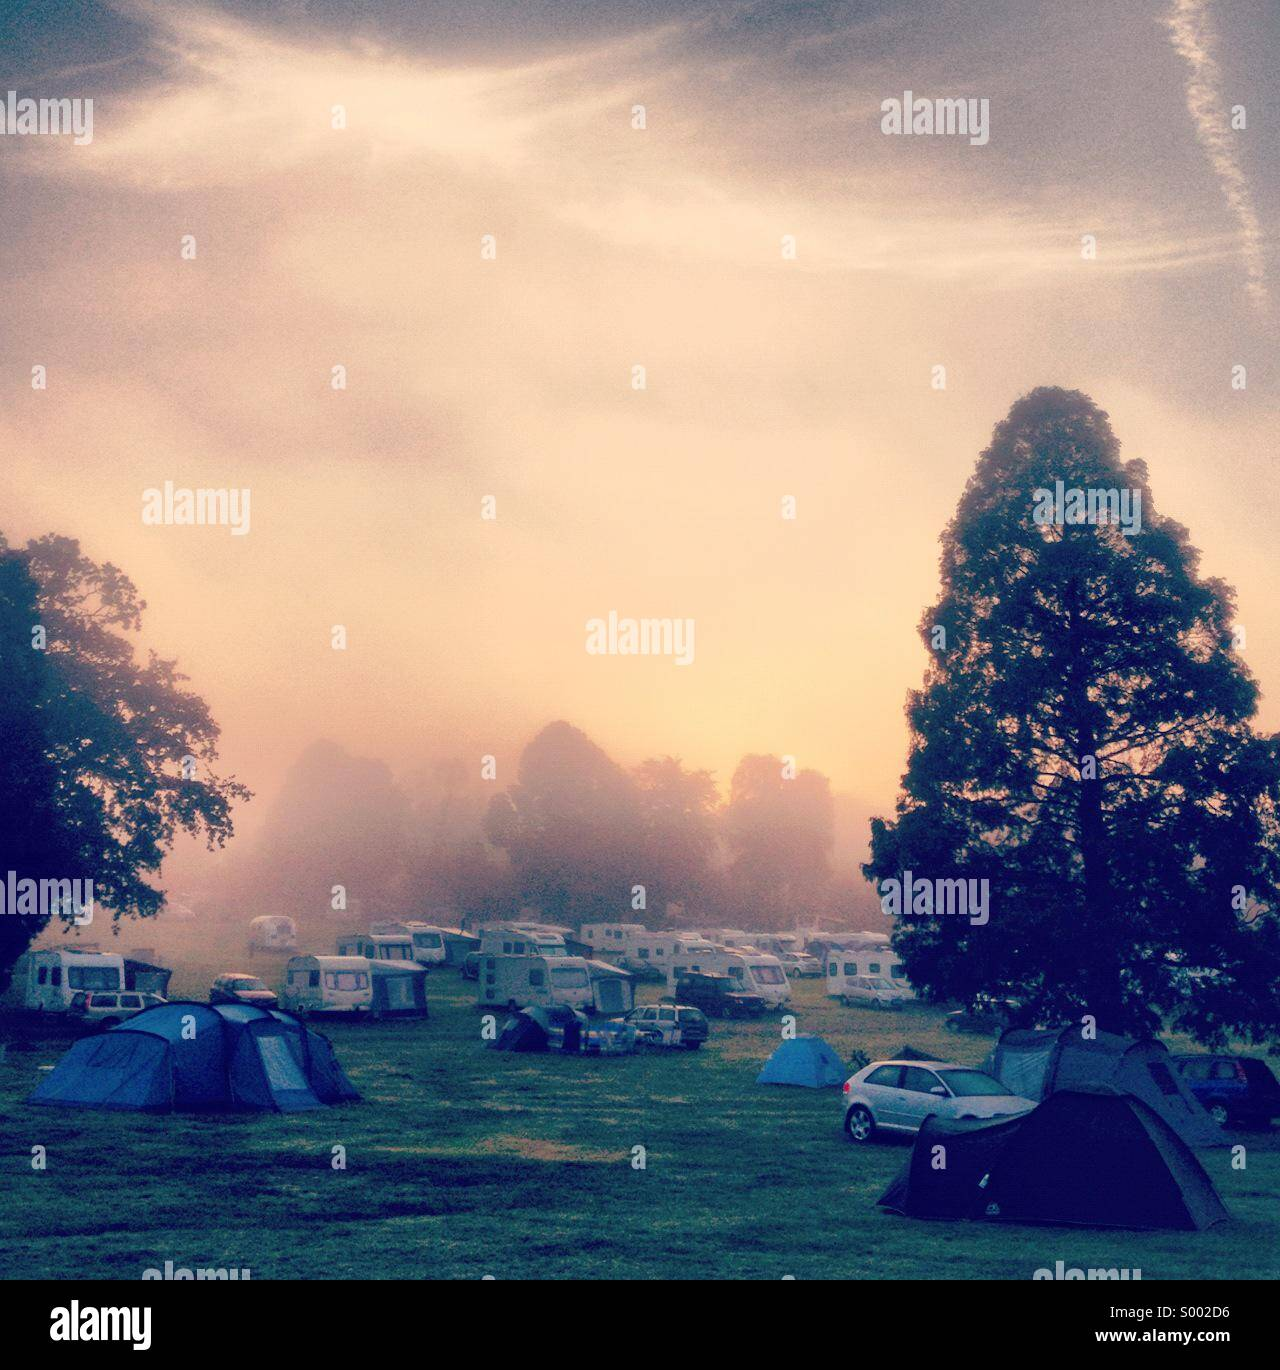 Trees Campsite Stock Photos Amp Trees Campsite Stock Images